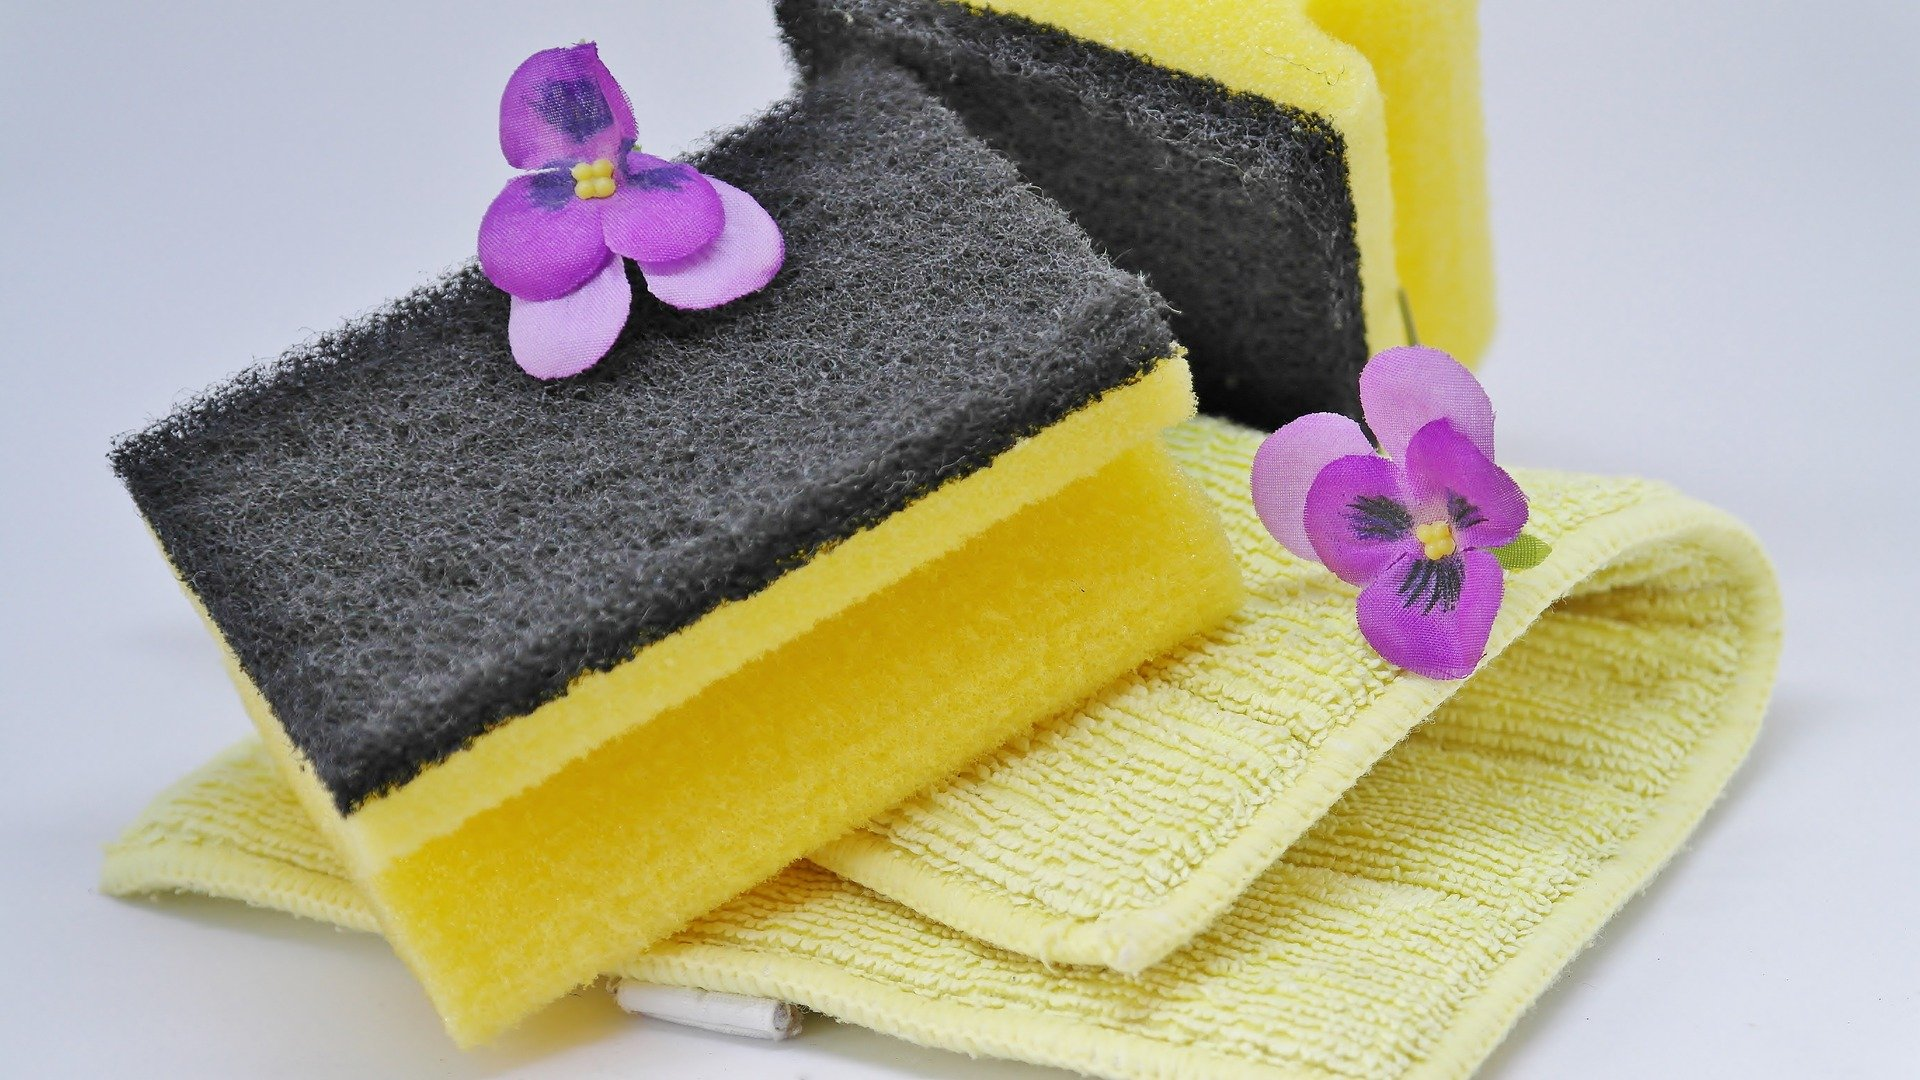 Several Benefits of Green Cleaning